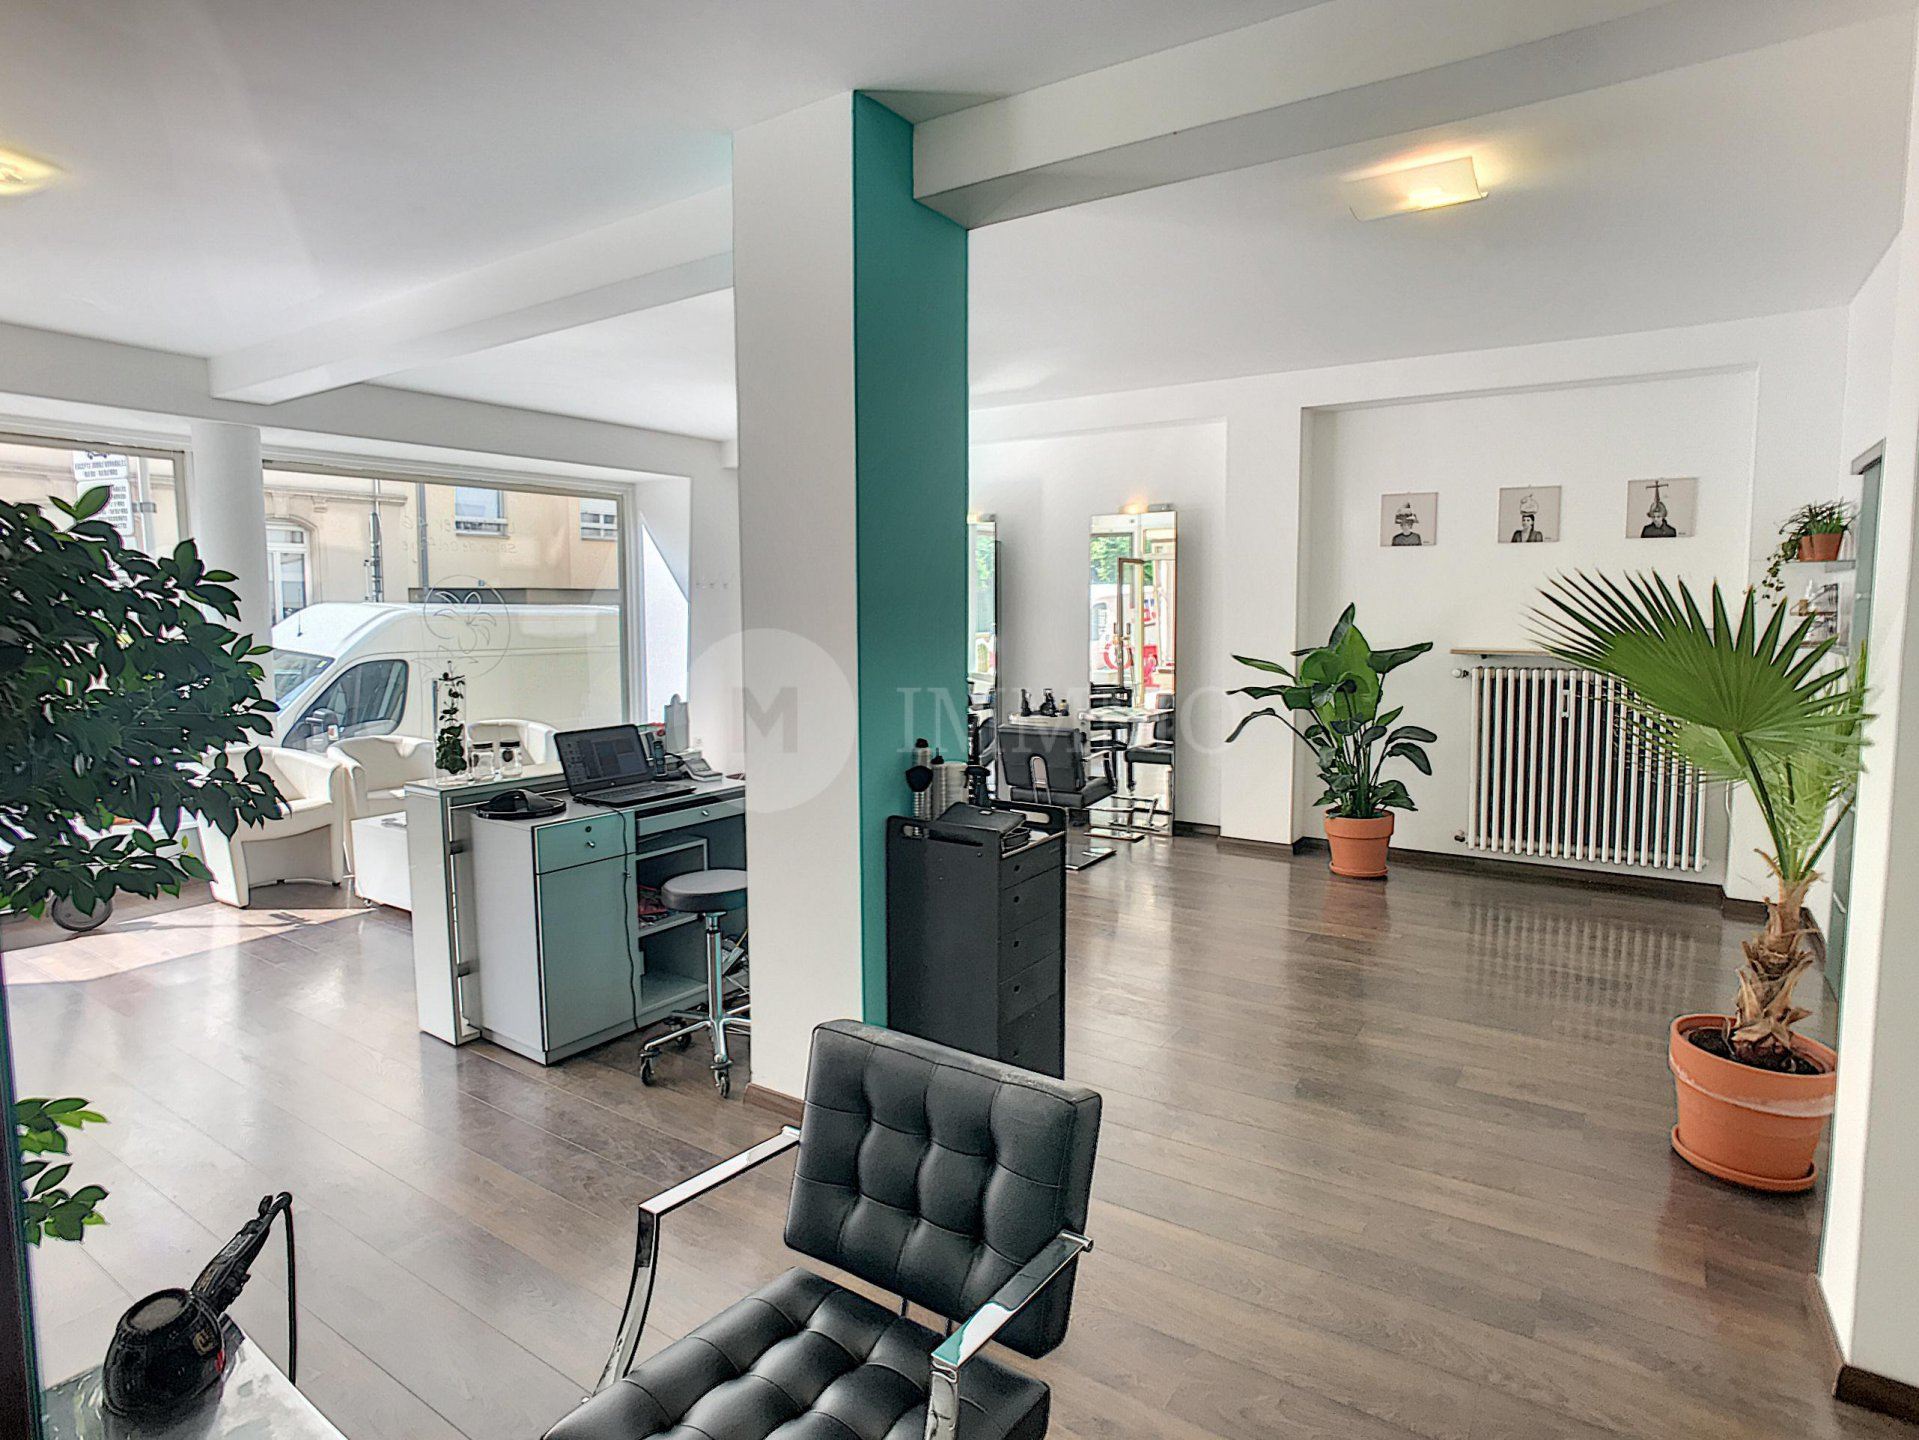 Rental Business - Luxembourg Gare - Luxembourg